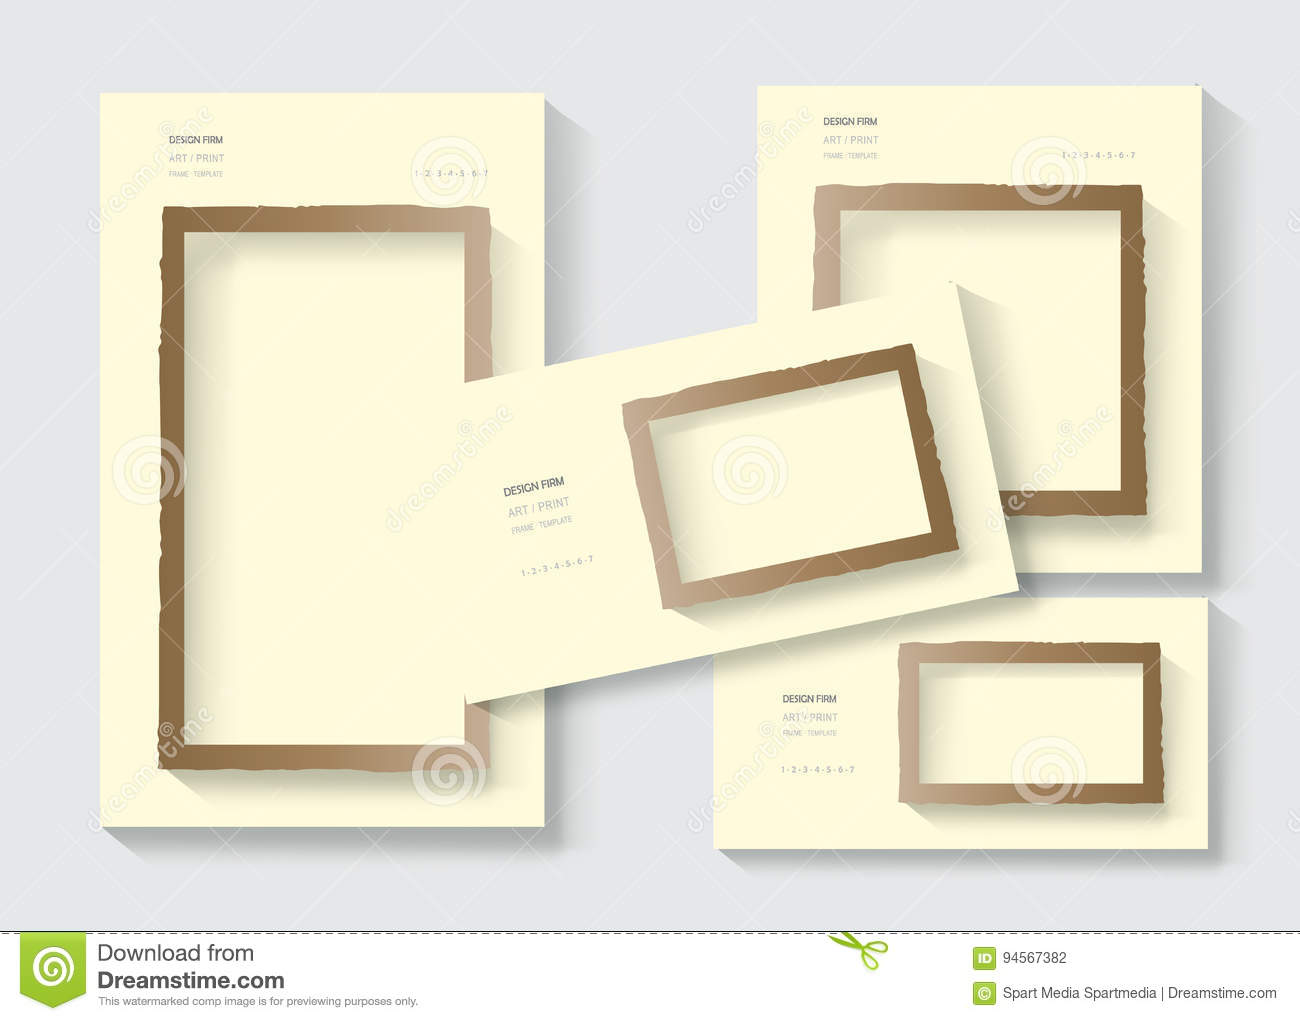 Business cards blank posters copy space stationery set stock vector download business cards blank posters copy space stationery set stock vector illustration of communication reheart Image collections